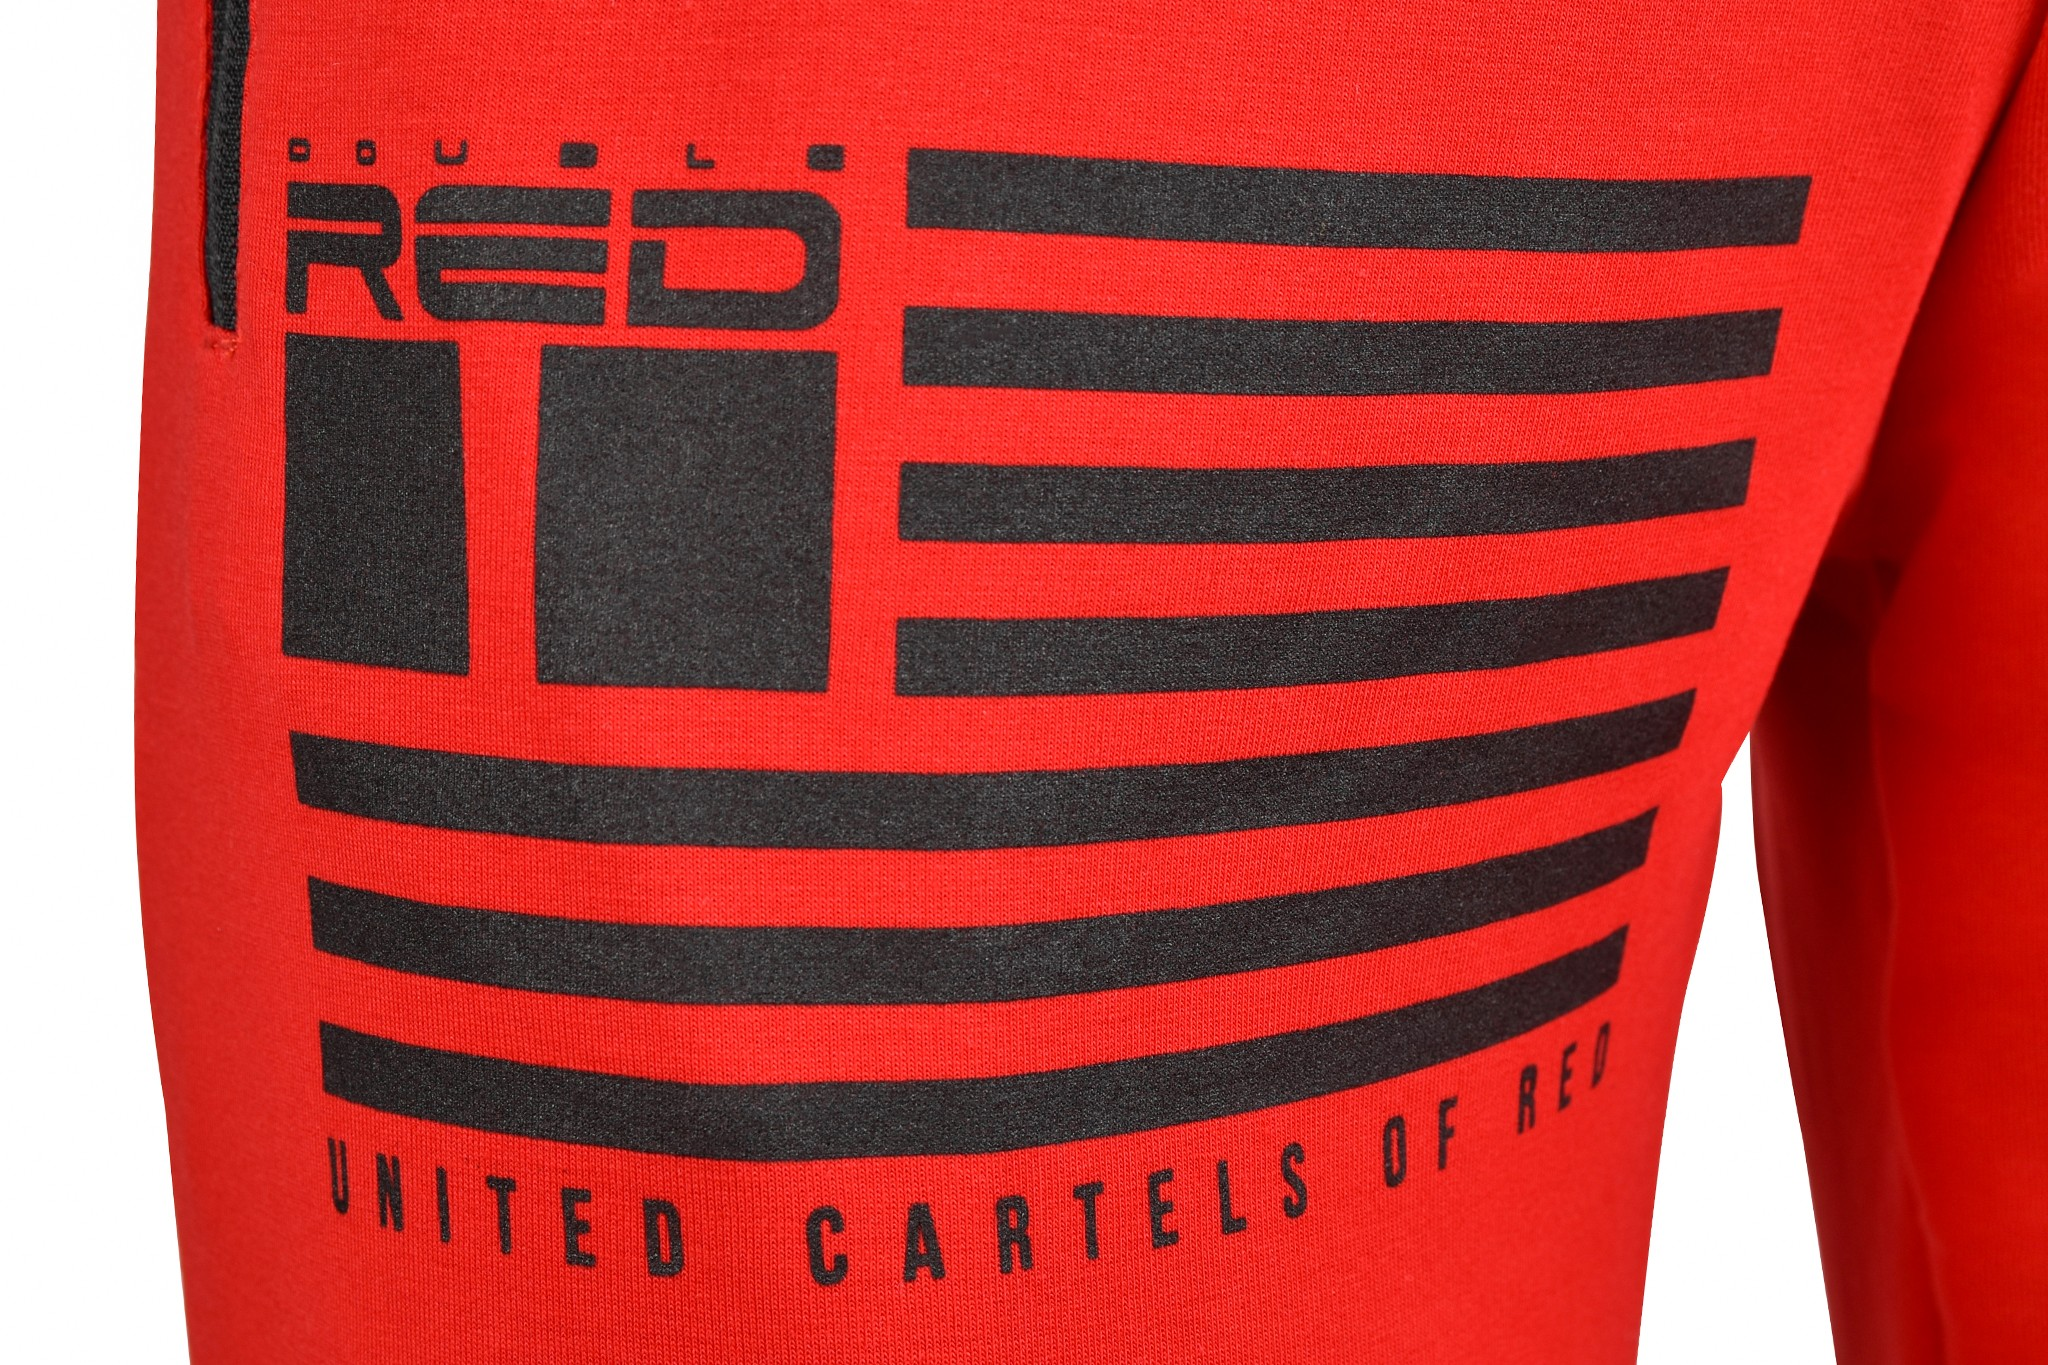 Sweatpants United Cartels Of Red UCR Red